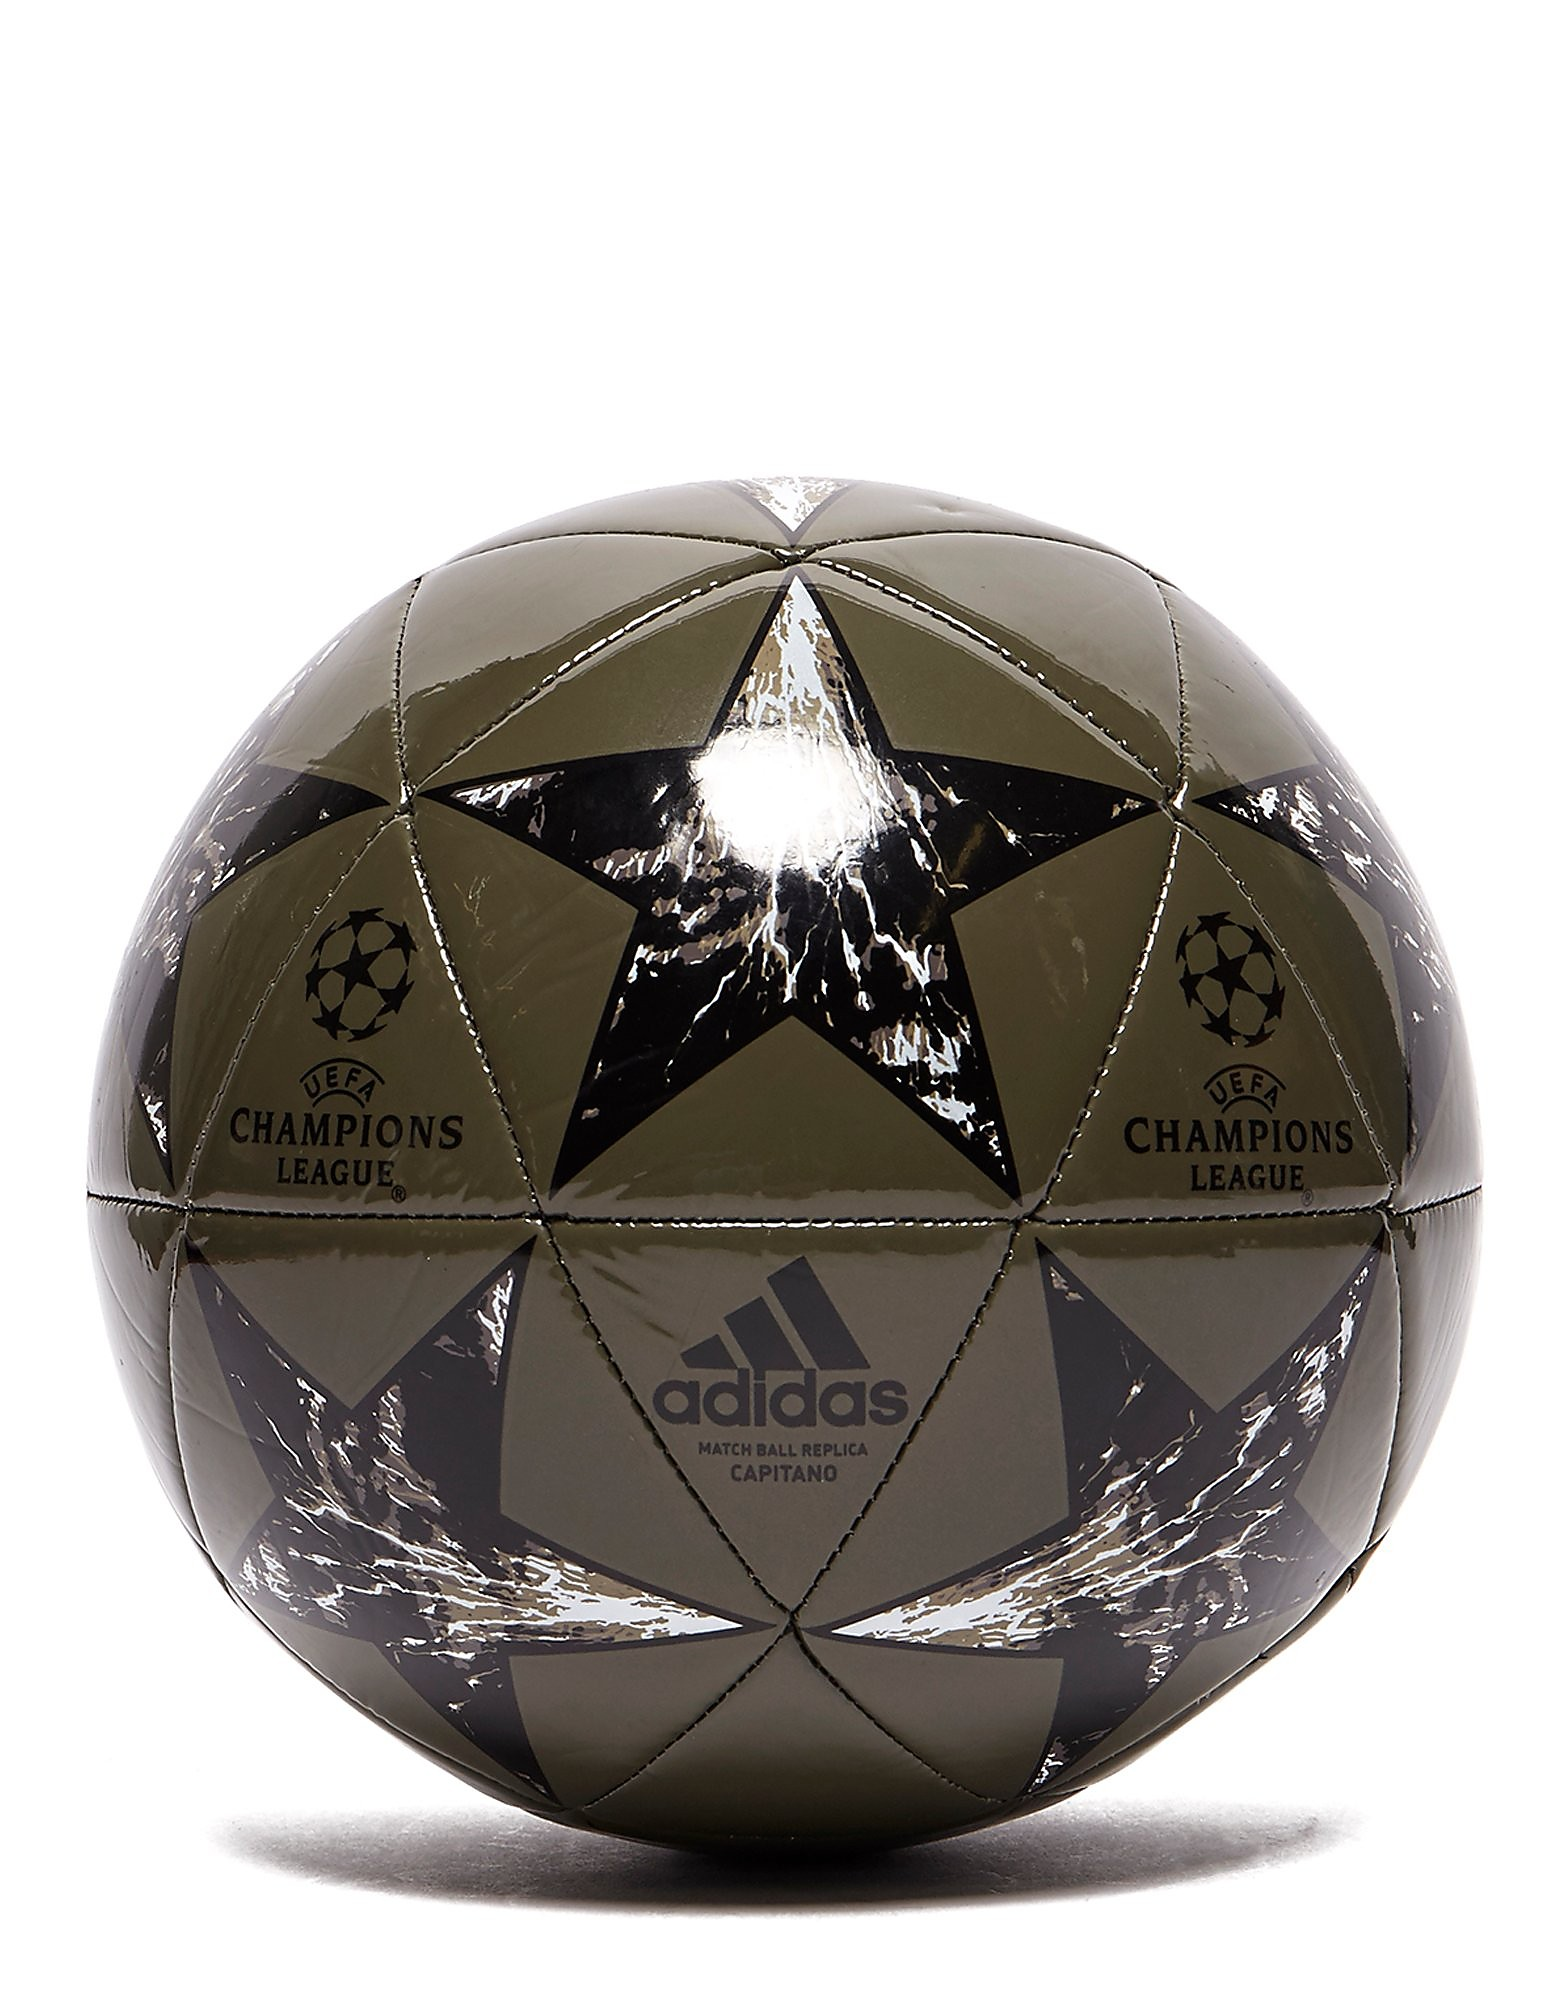 adidas Capitano Champions League Football